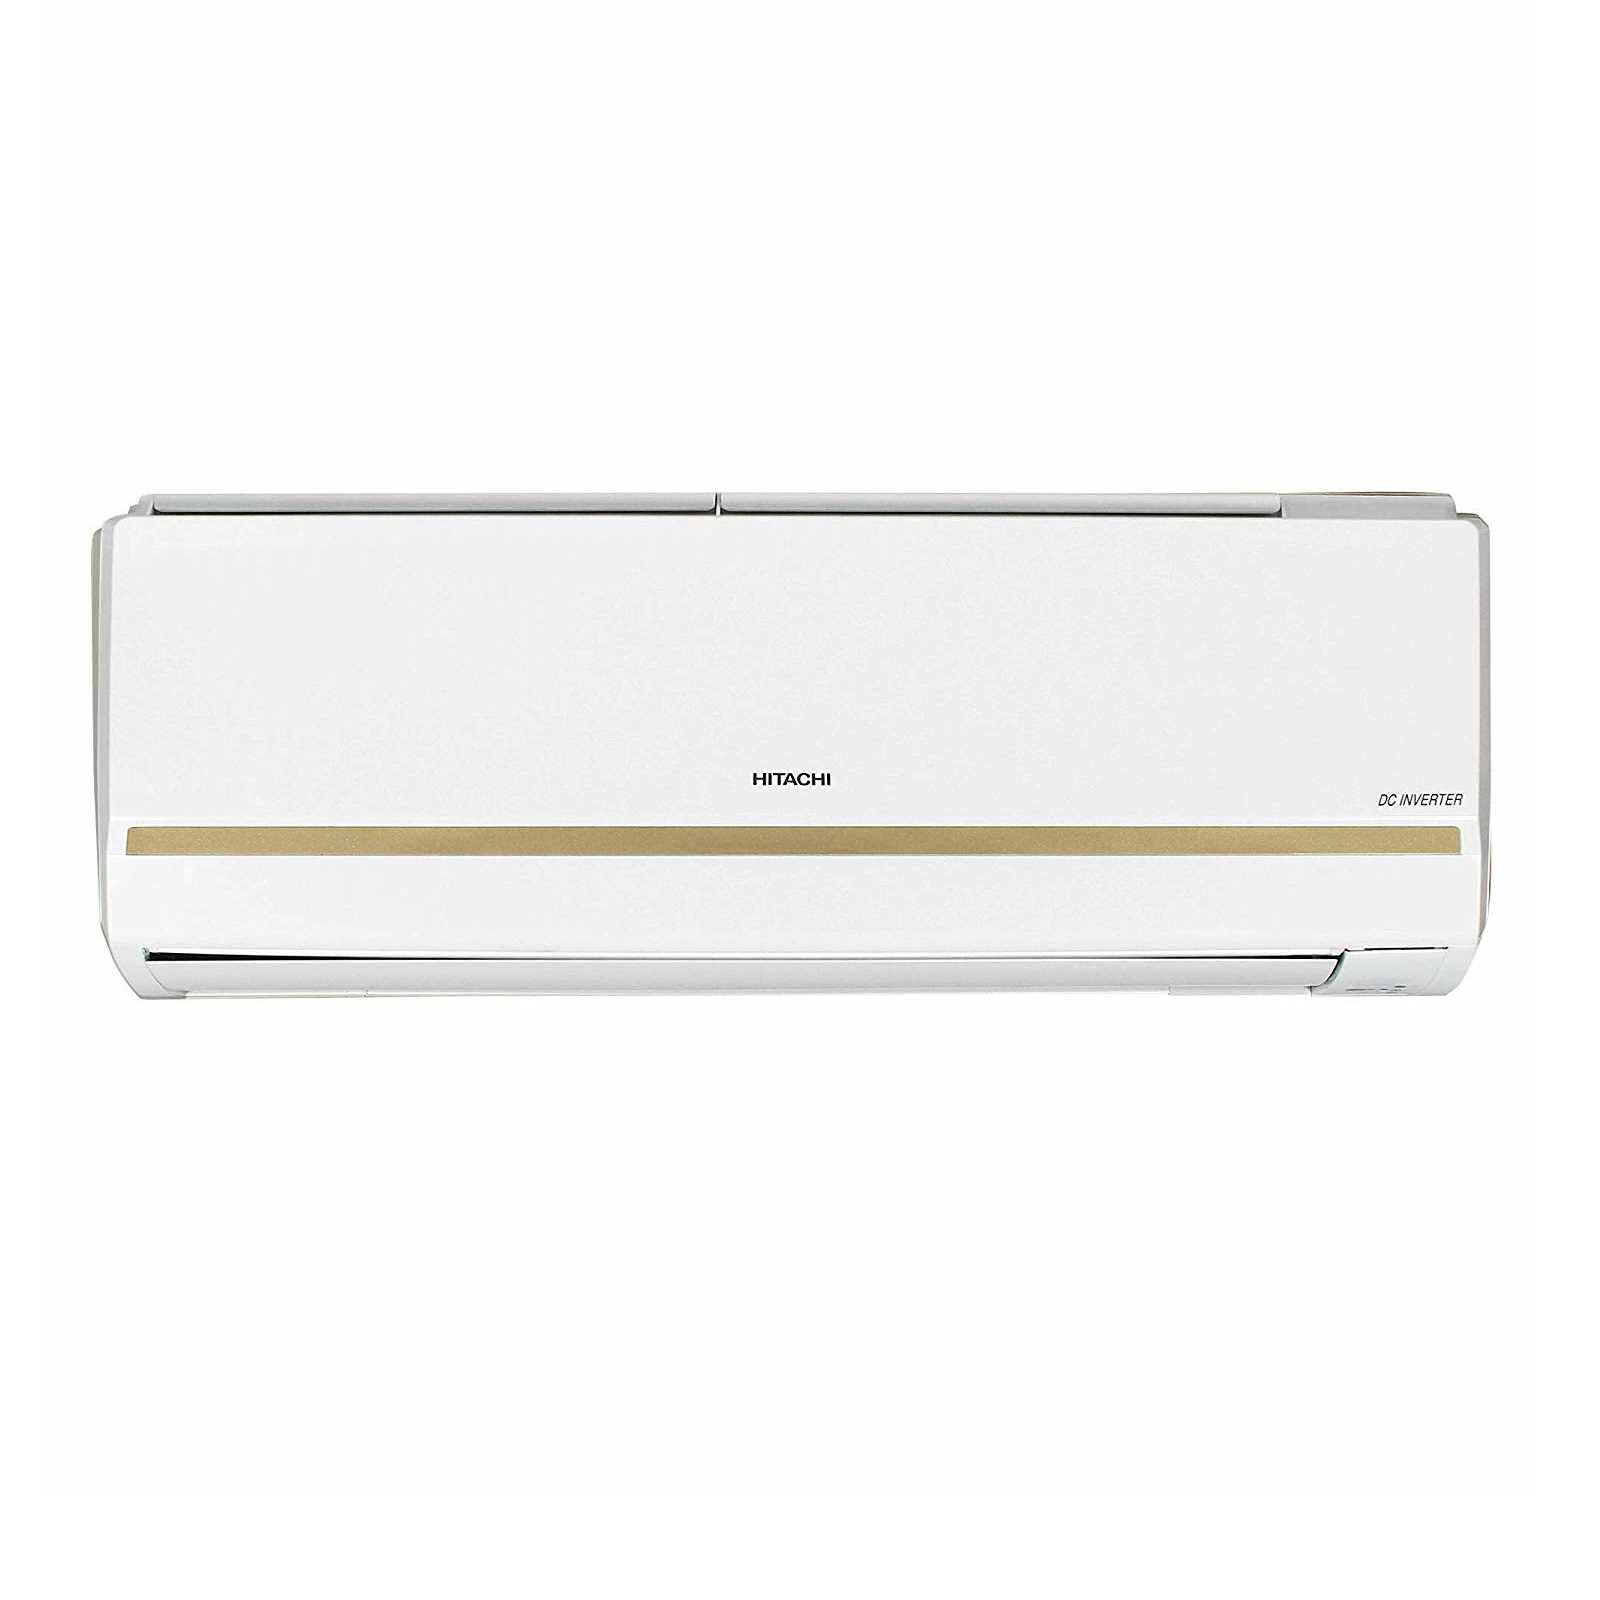 Hitachi RSFG512HCEA 1 Ton 5 Star Inverter Split AC